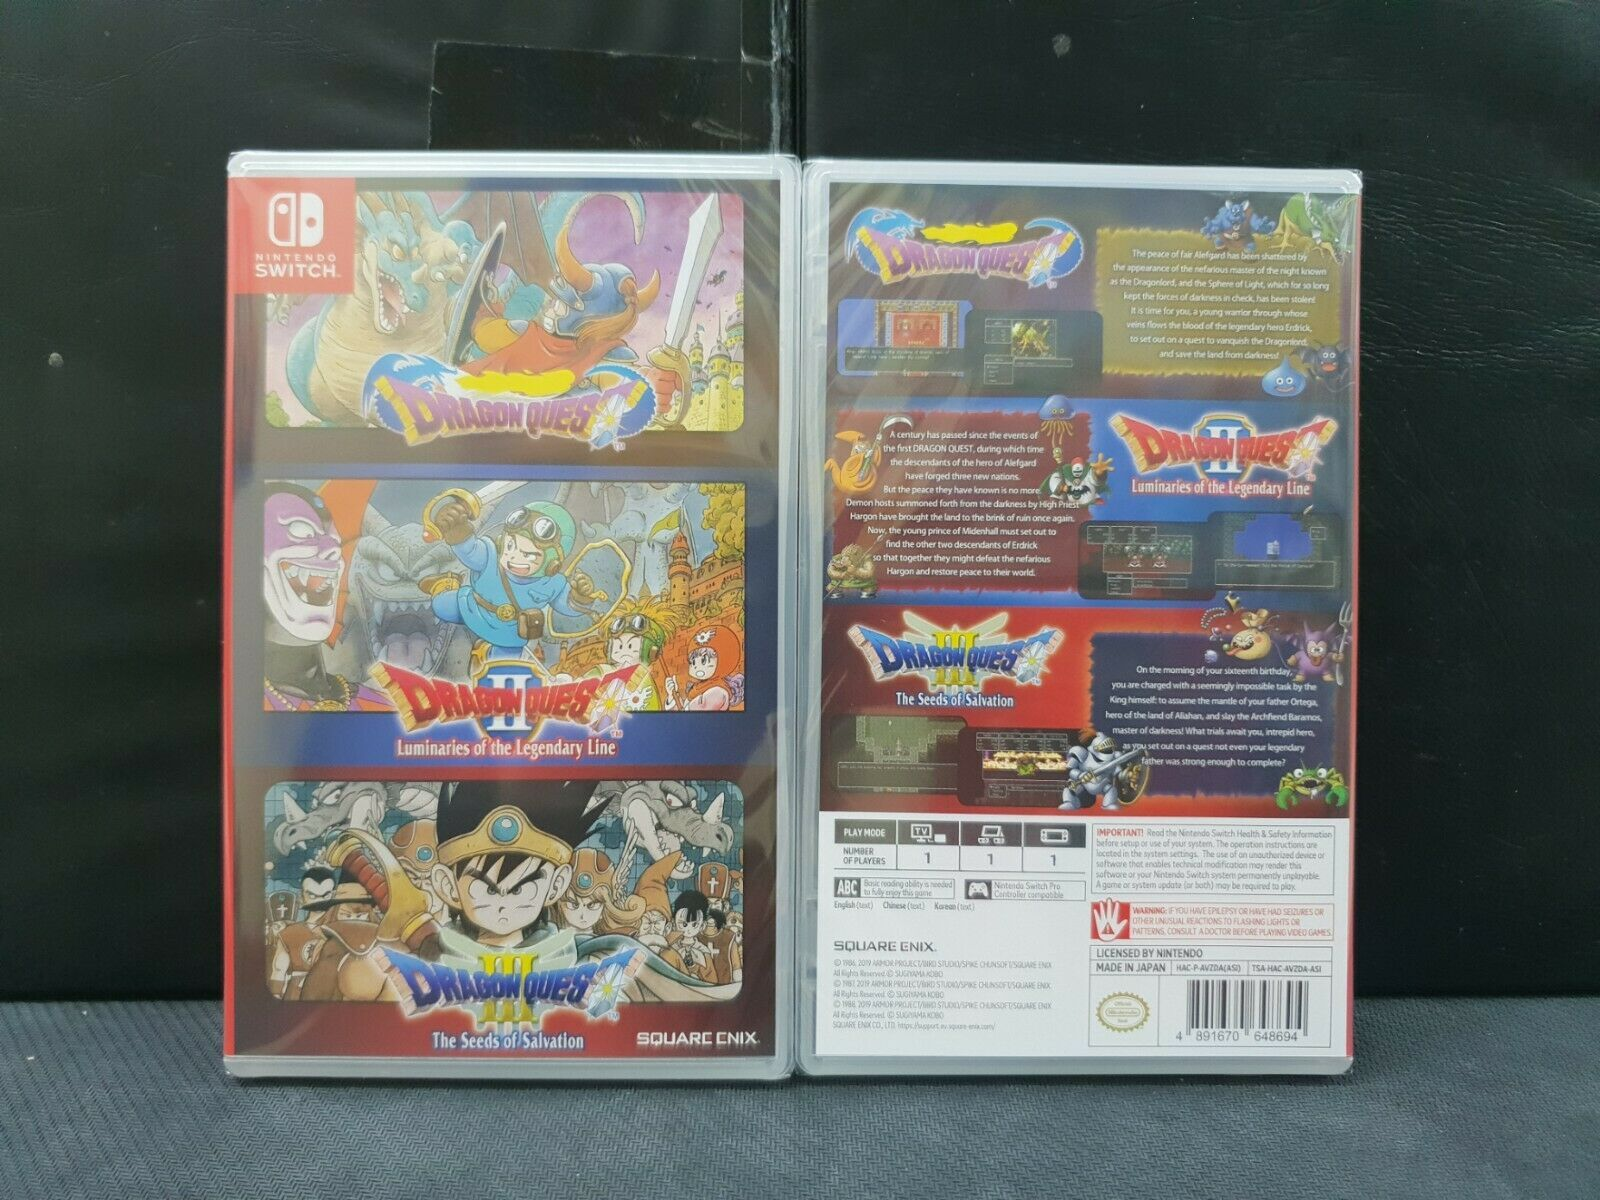 (ASIA ENGLISH VERSION) Nintendo Switch Dragon Quest 1+2+3 Collection (Brand New)